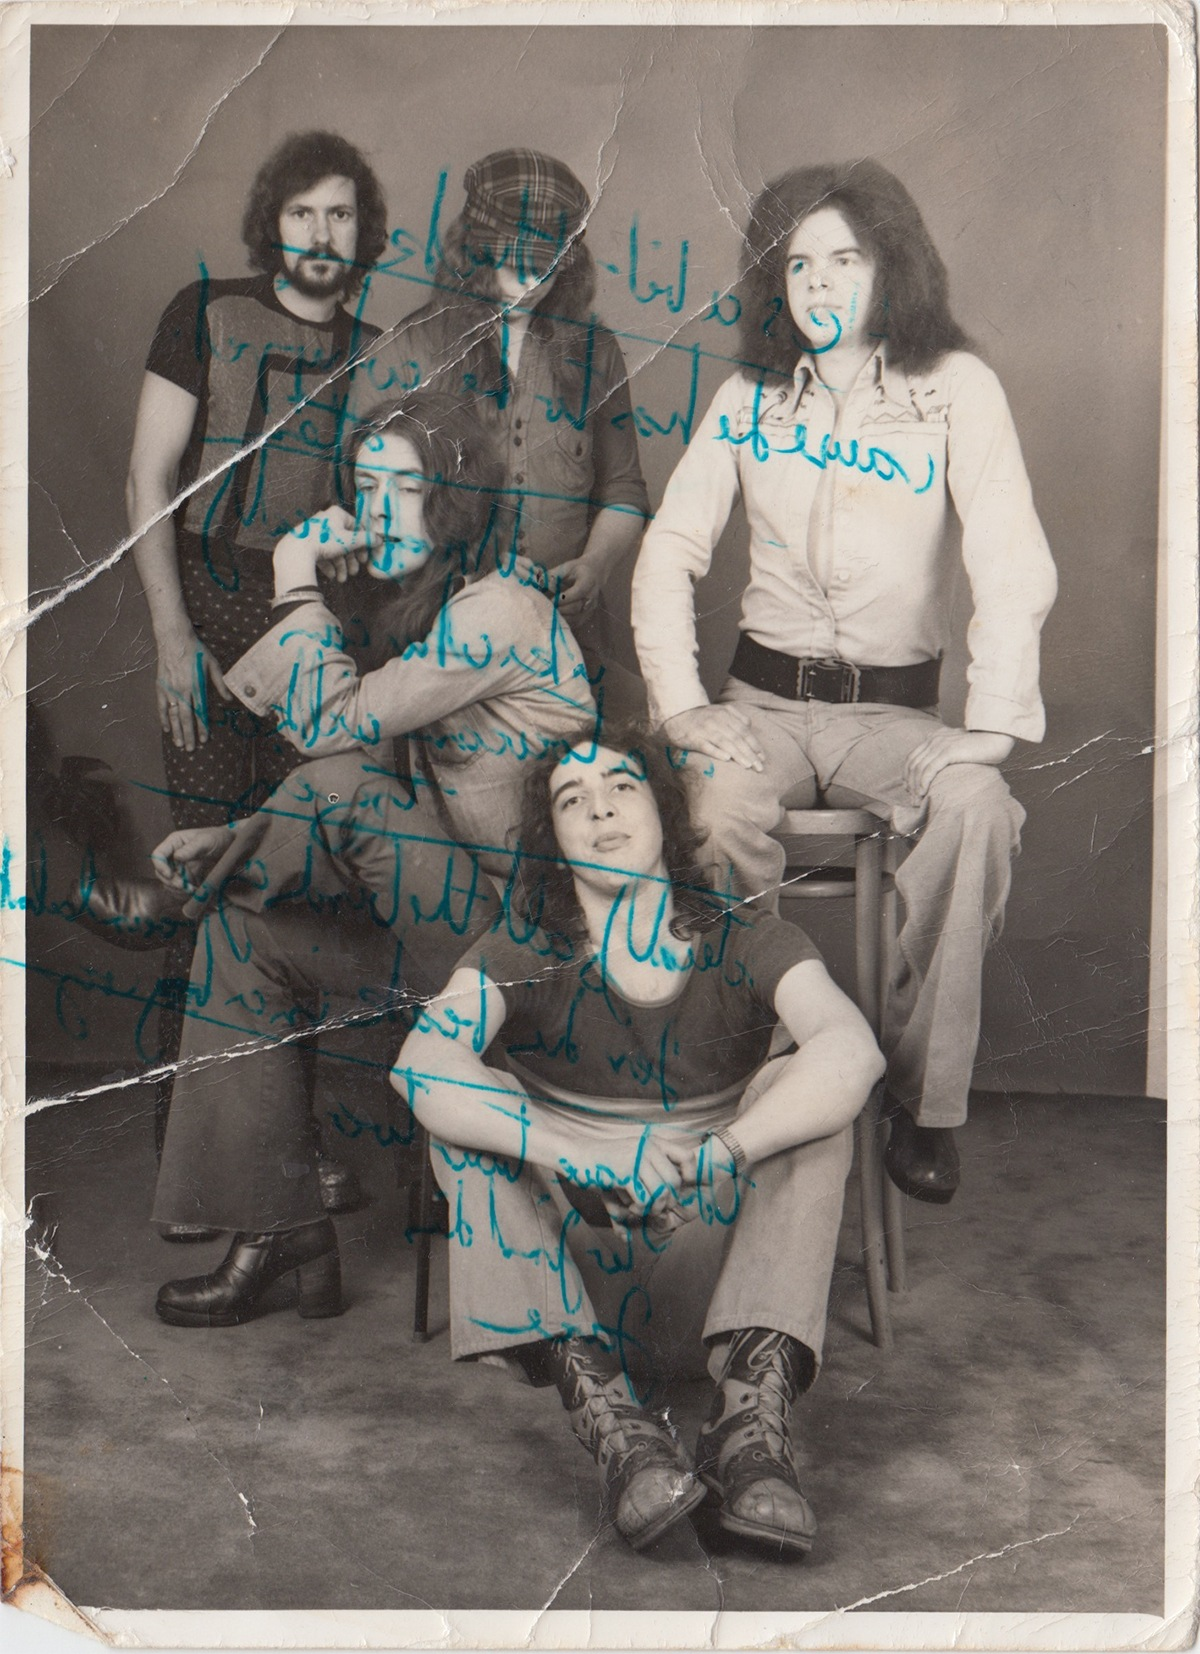 1970's rock band